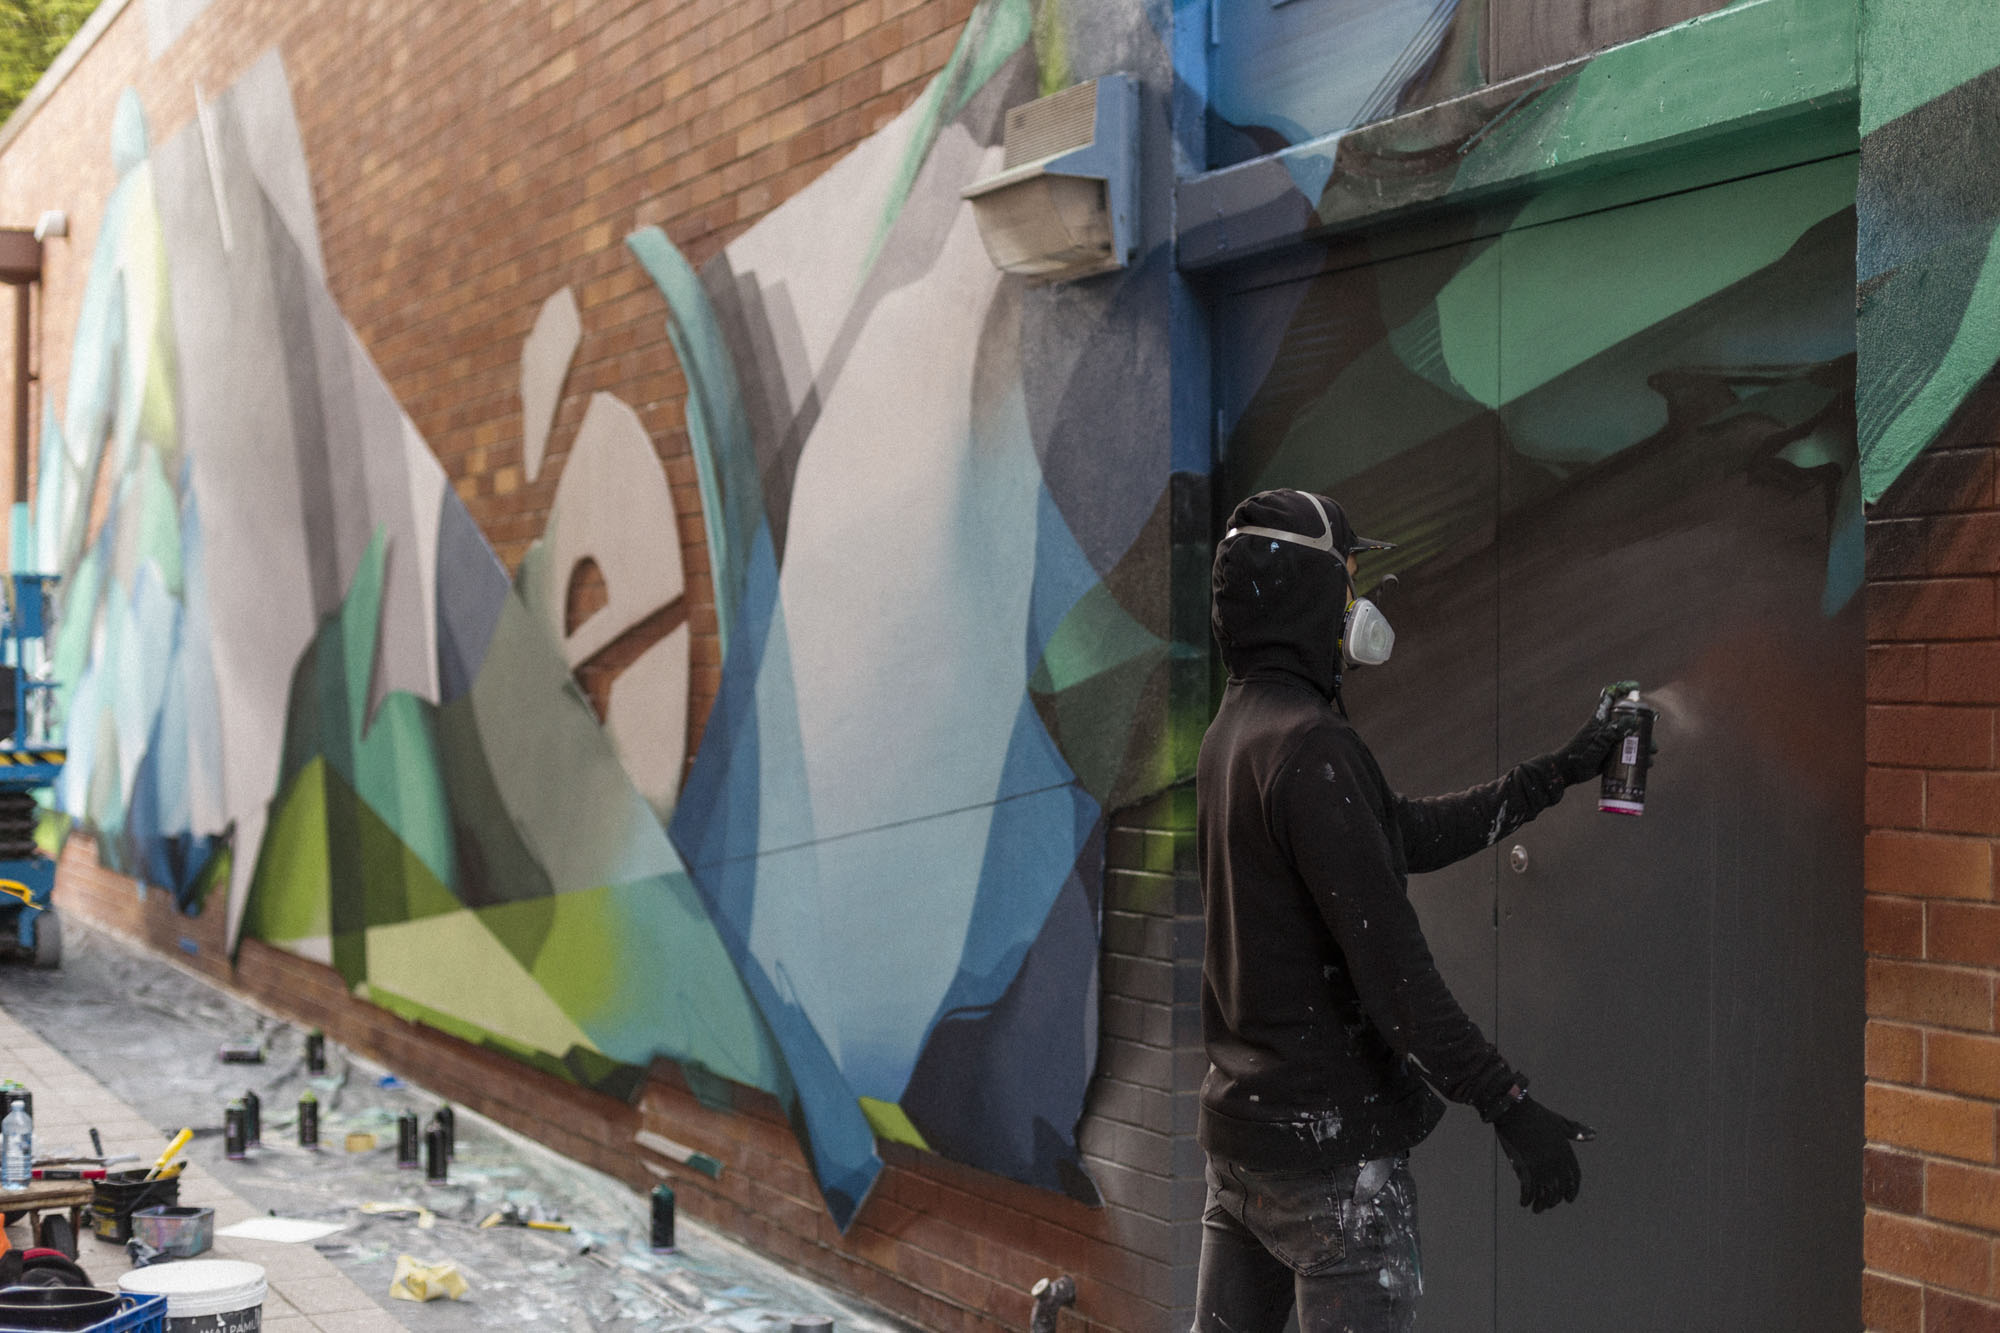 A work by Does - 201905-DOES-QUT-Brisbane_LukeShirlaw_IMG_9923